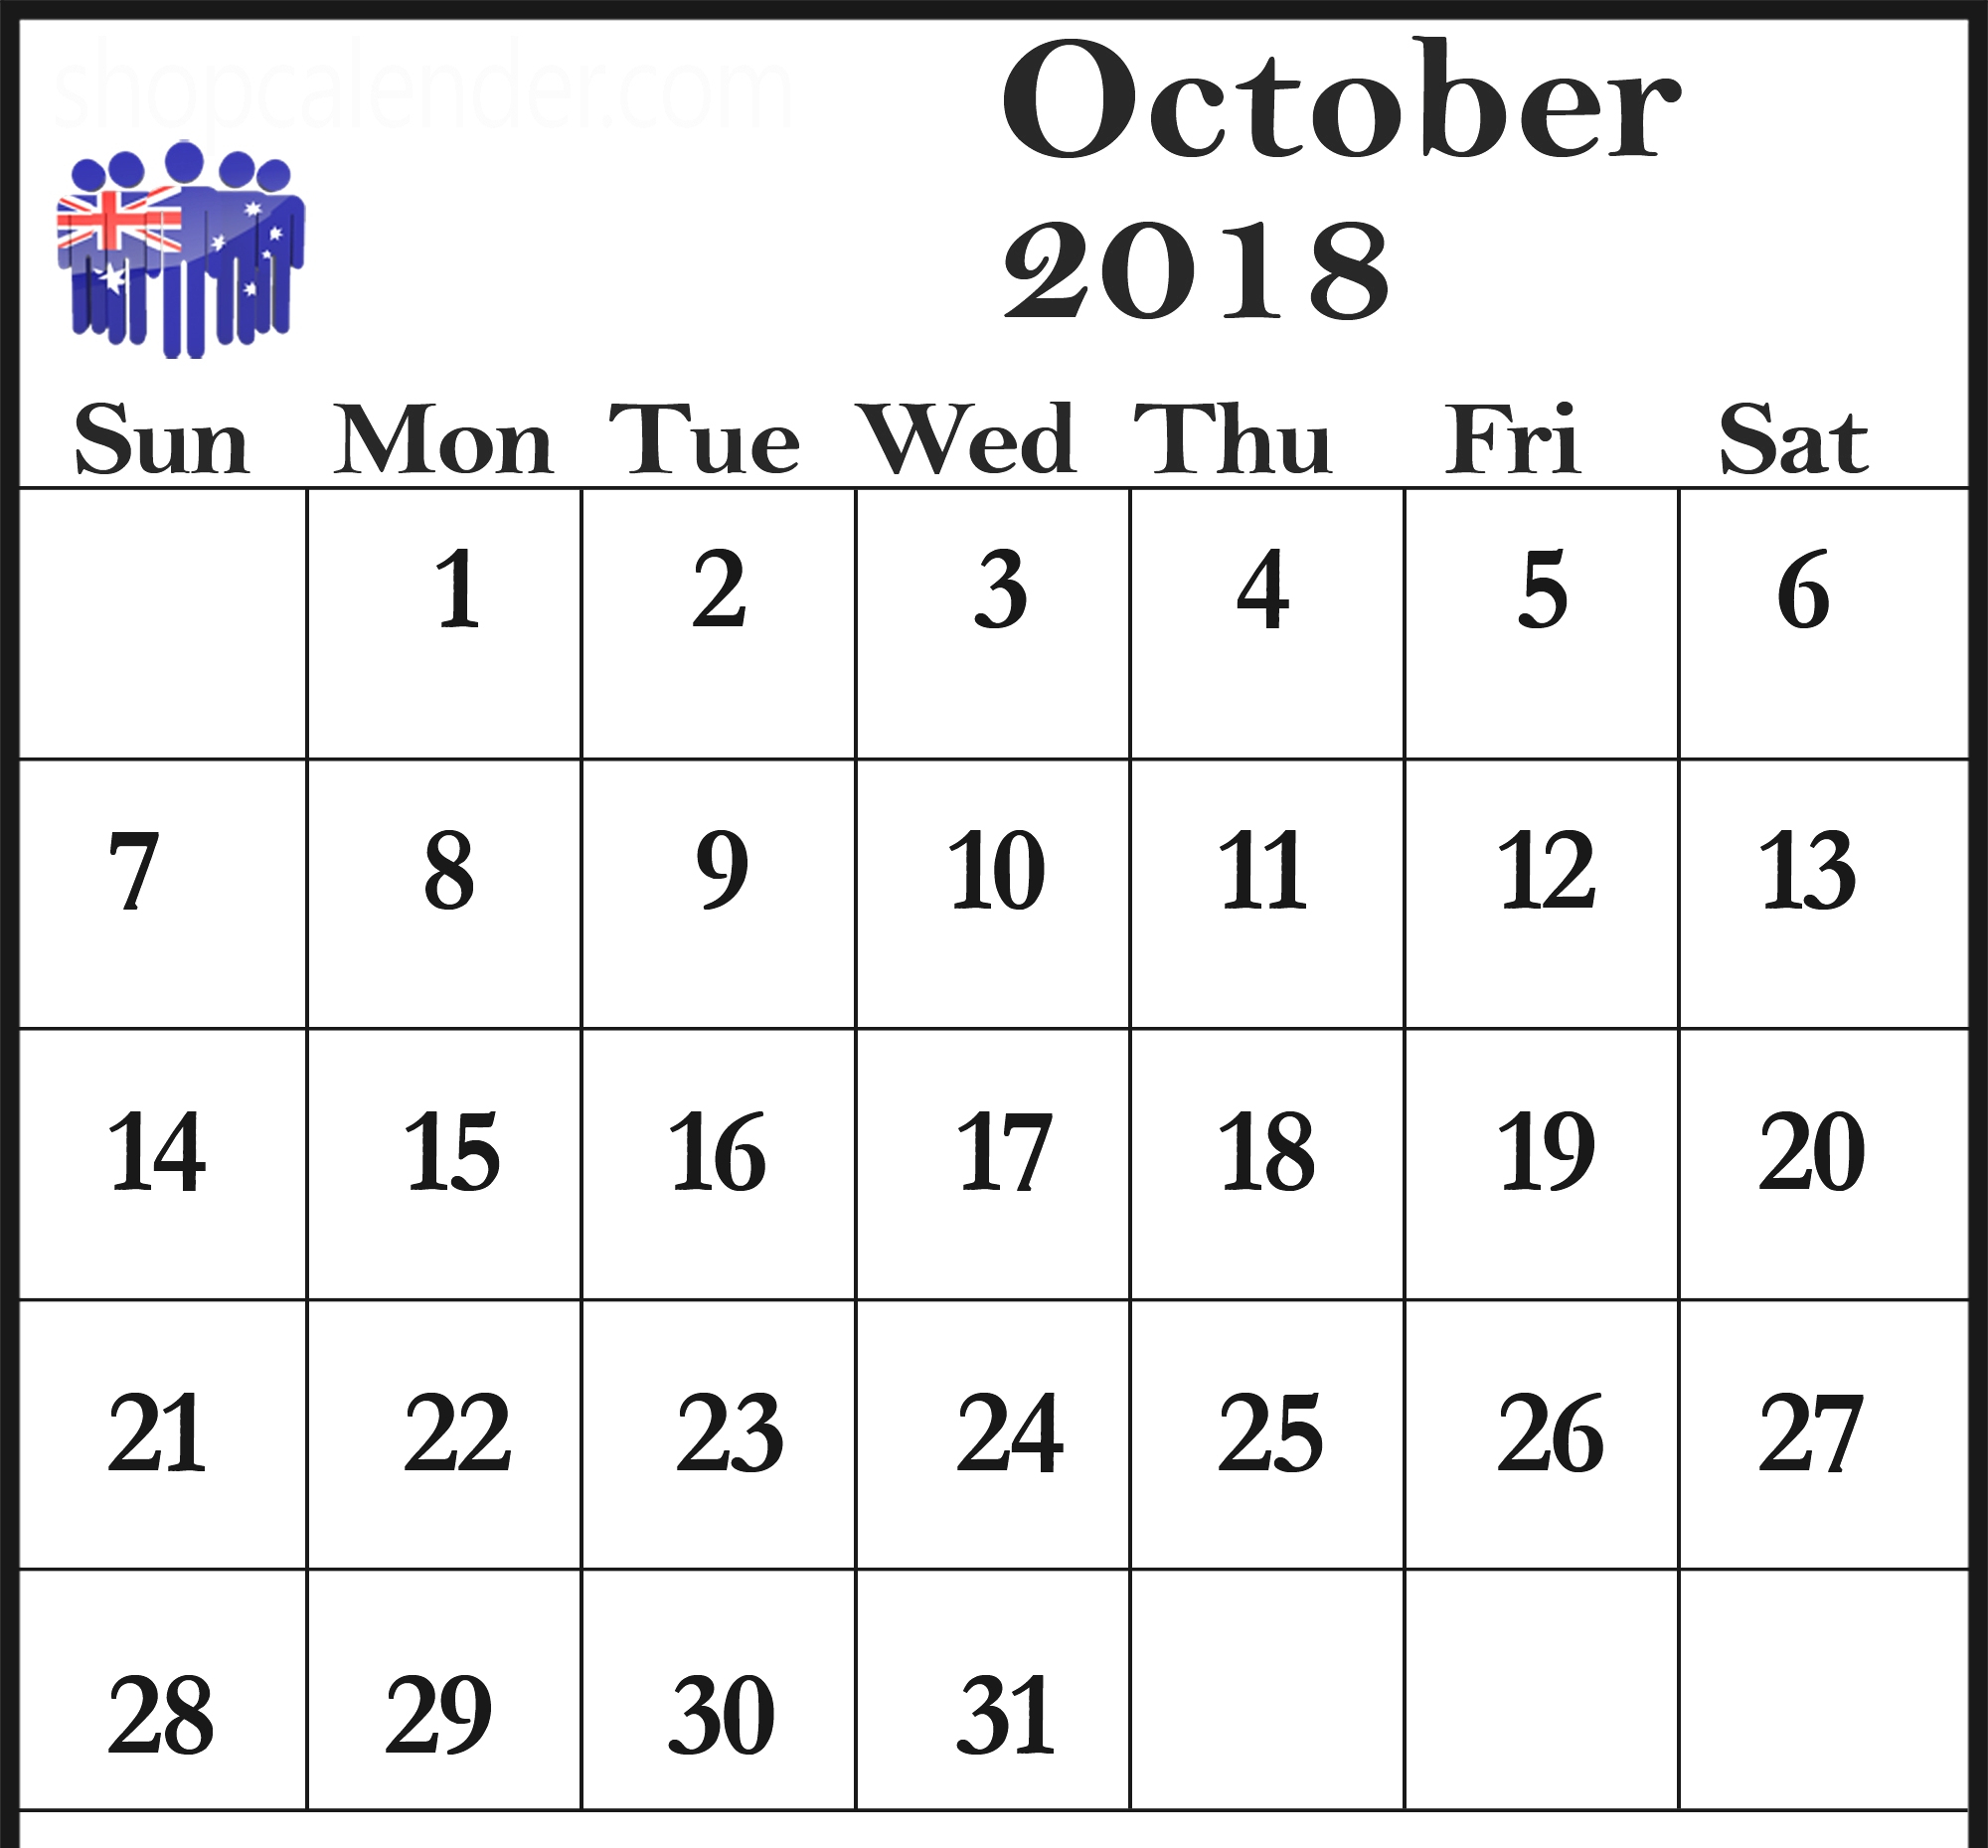 October 2018 Calendar Australia School Holidays  Free with regard to 2018 Calendar Australia Printable